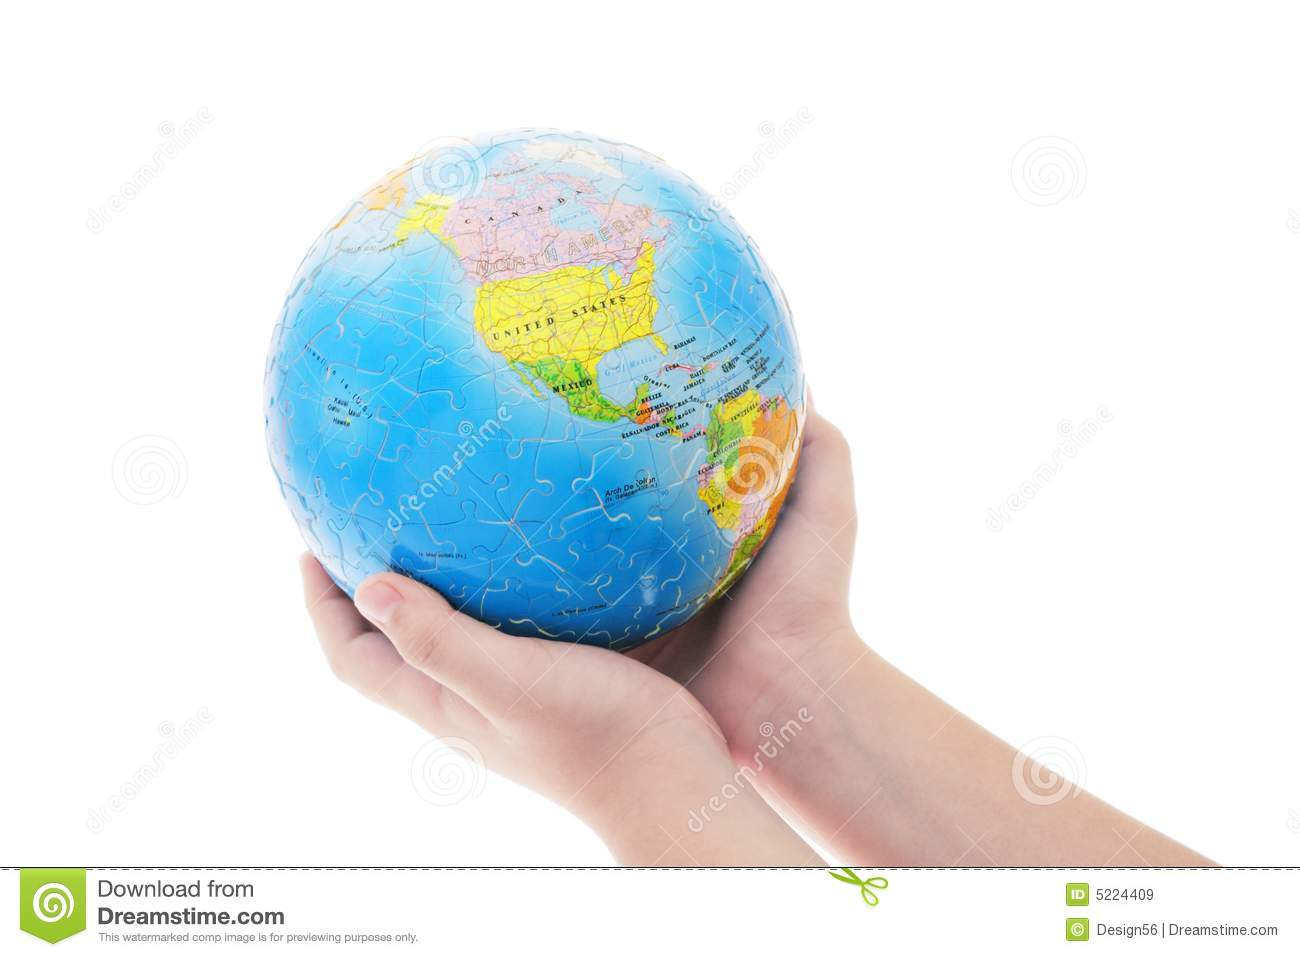 usa map game puzzle with Royalty Free Stock Images Hands Holding Globe Jigsaw Puzzle Image5224409 on Disney Big Hero 6 Printable Puzzle Page further Stock Photo People Pushing Puzzle Pieces Image8254510 together with Bodies Of Water together with Fifty States And Capitals additionally New York City wallpapers 7226 1680x1050 1.